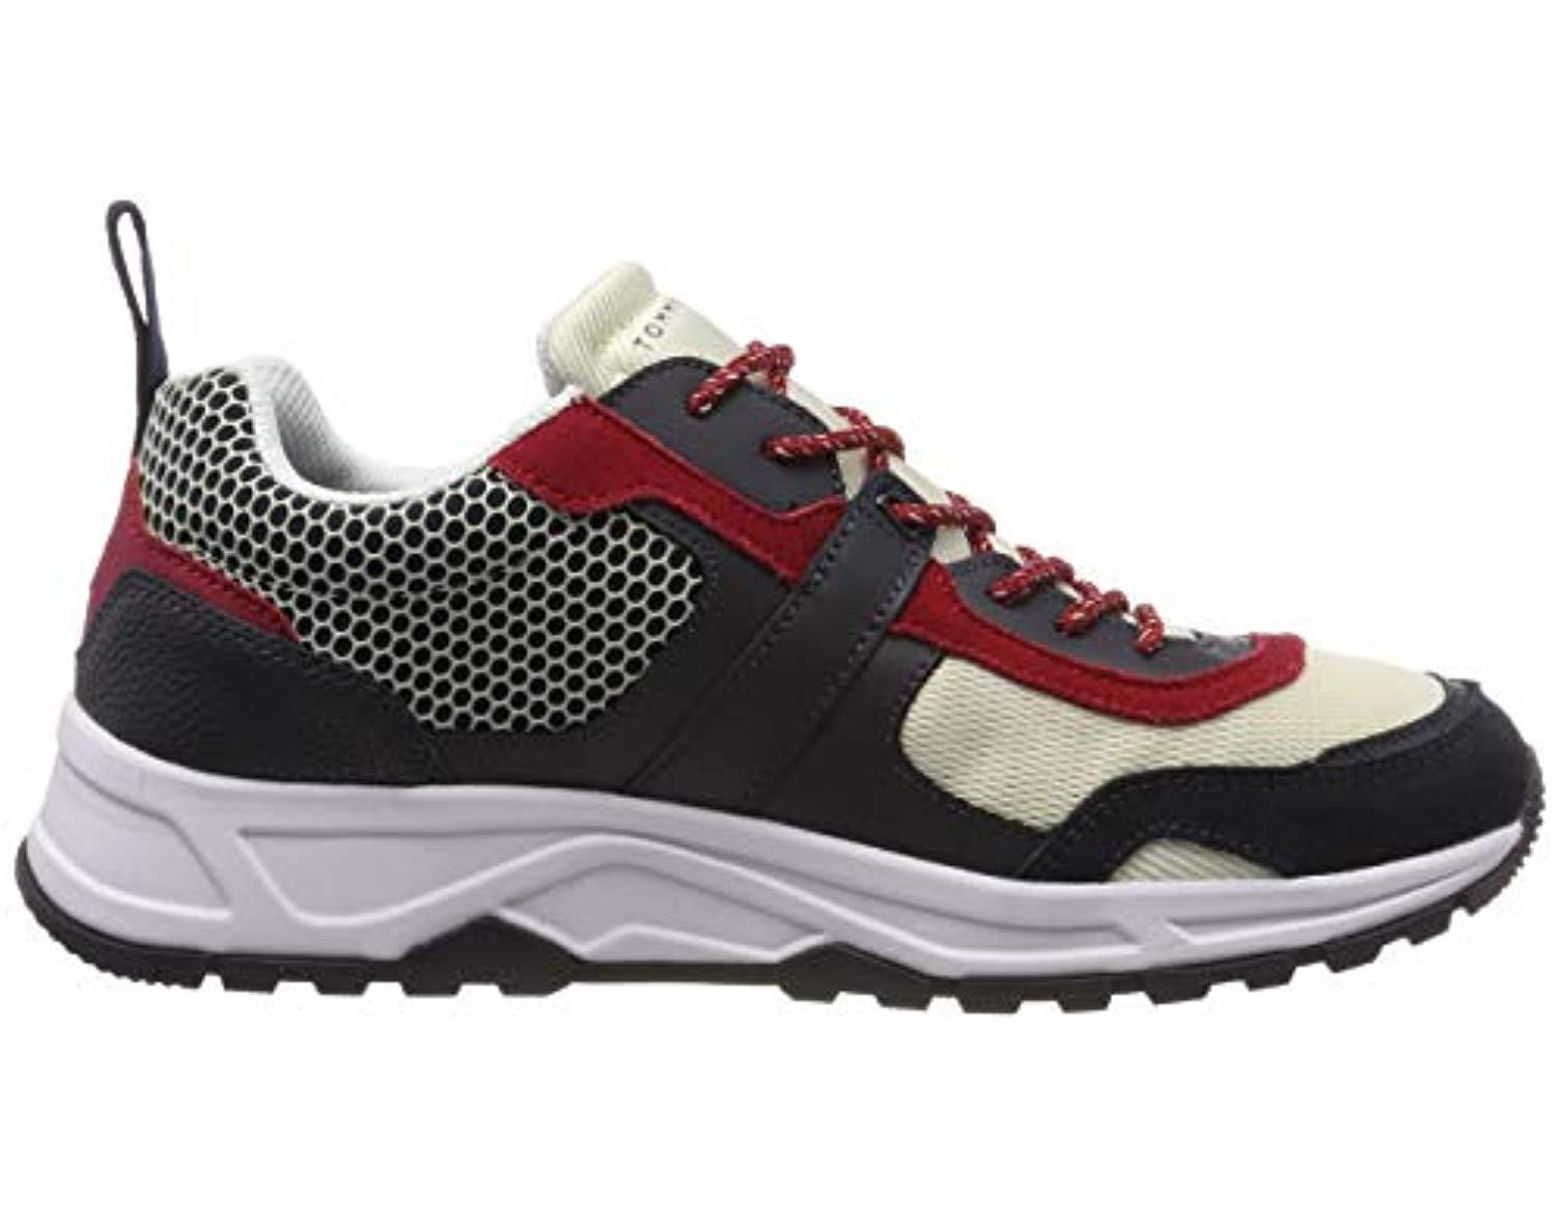 Mix Lightweight Hilfiger Low In Sneakers Tommy Runner Top Material 8Pk0wOn